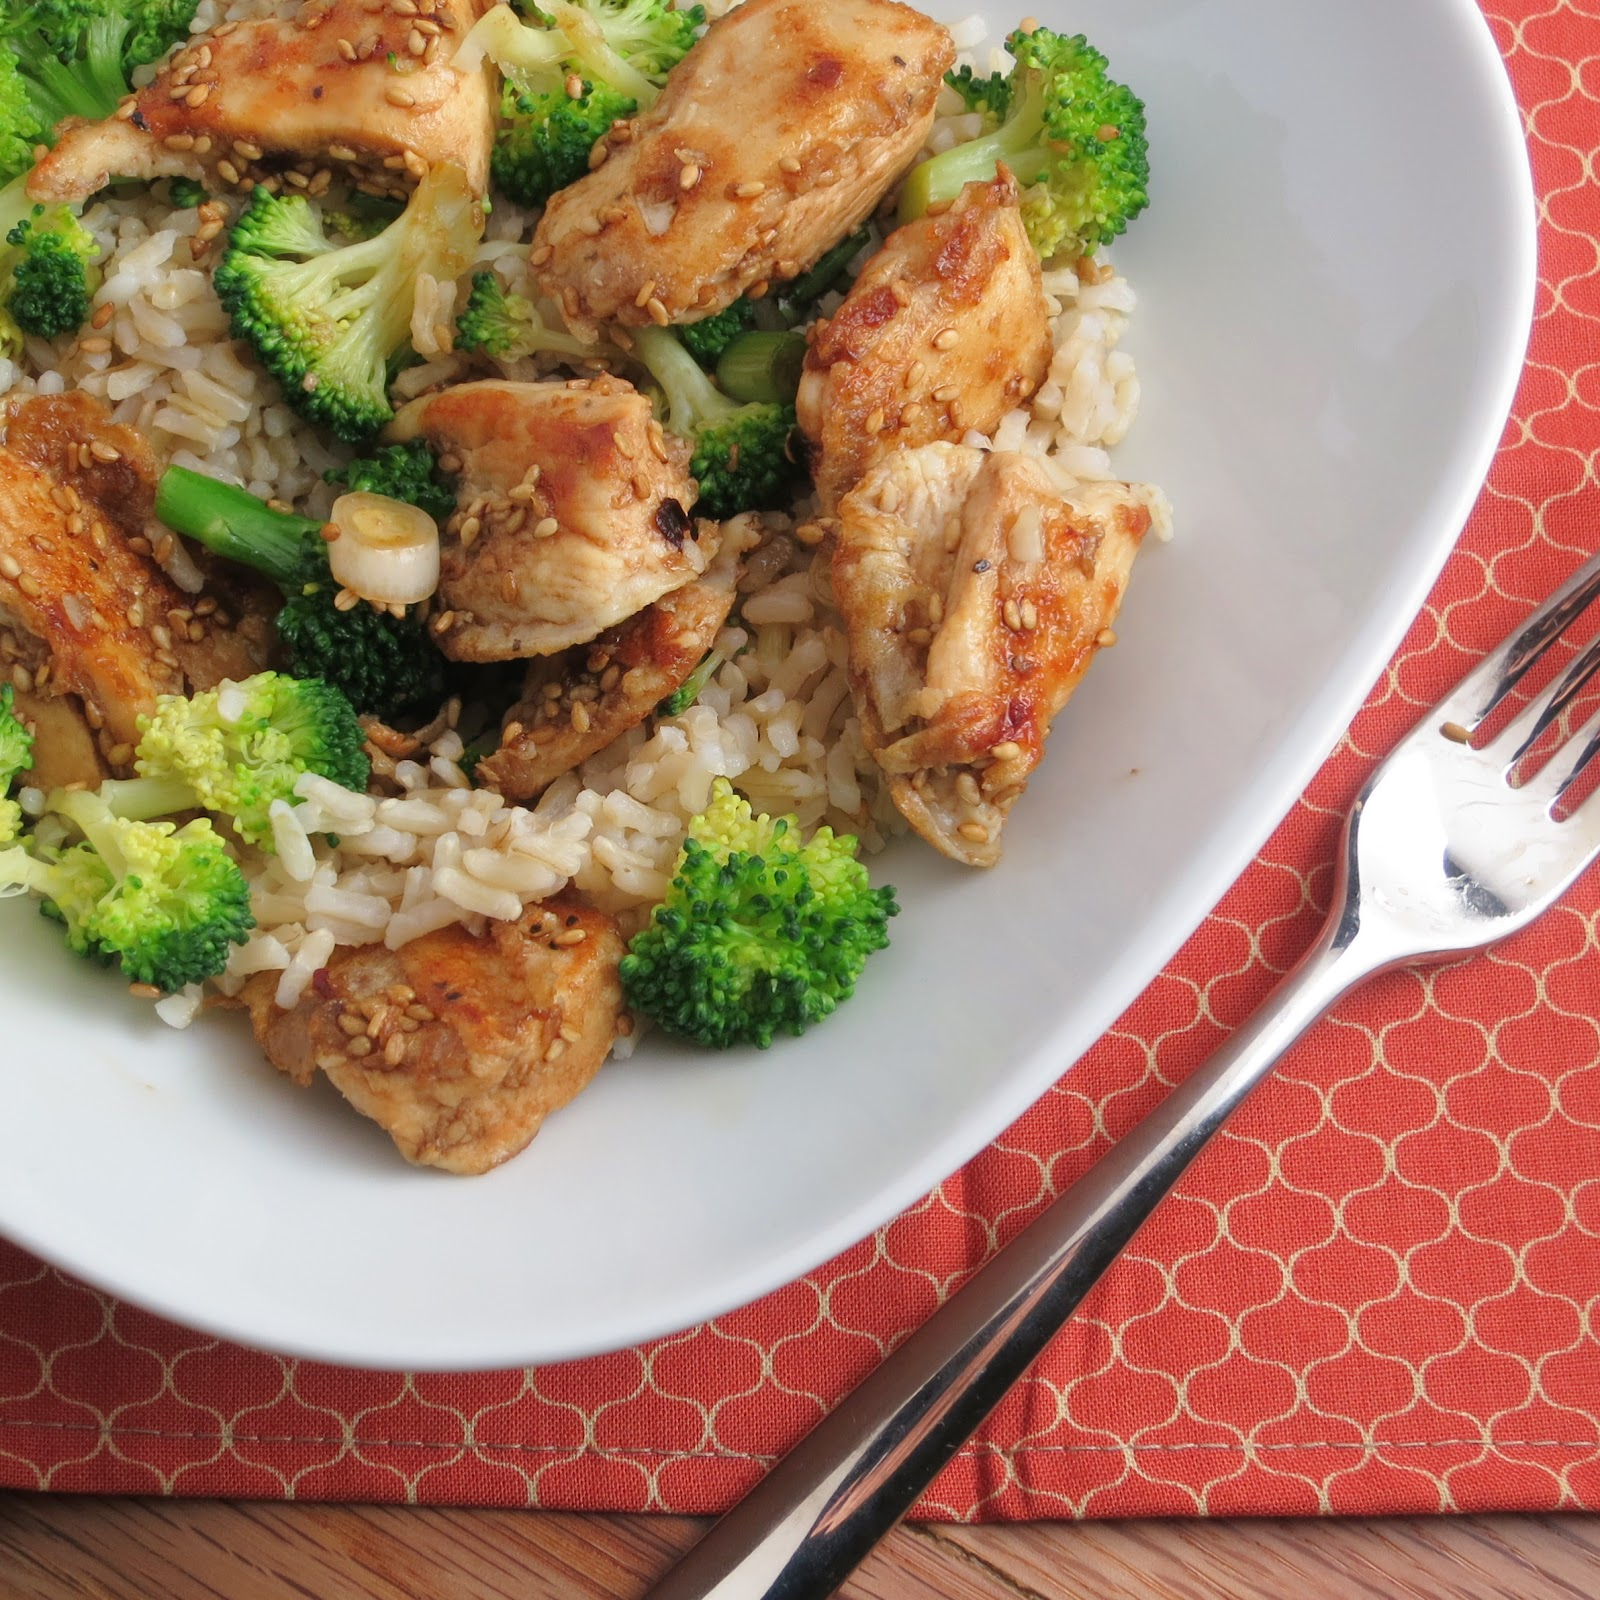 Lighter Sesame Chicken - Alida's Kitchen